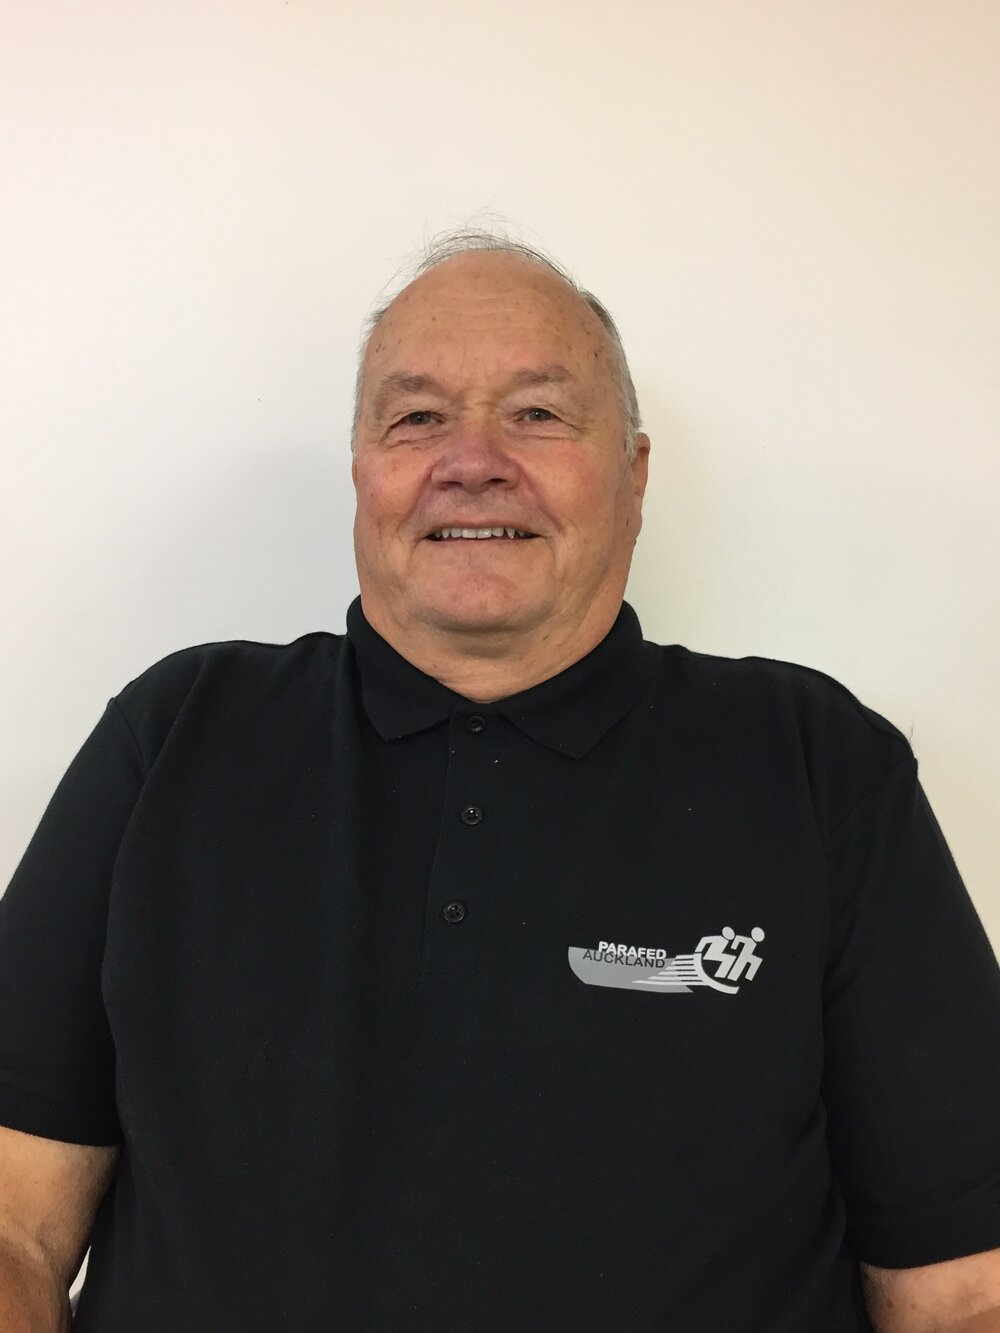 Treasurer; Jim Hogg - Jim is a well known local business owner, who has served in many volunteer roles over a number of years, including as treasurer for Athletics New Zealand, and a number of board roles for Athletics Auckland.